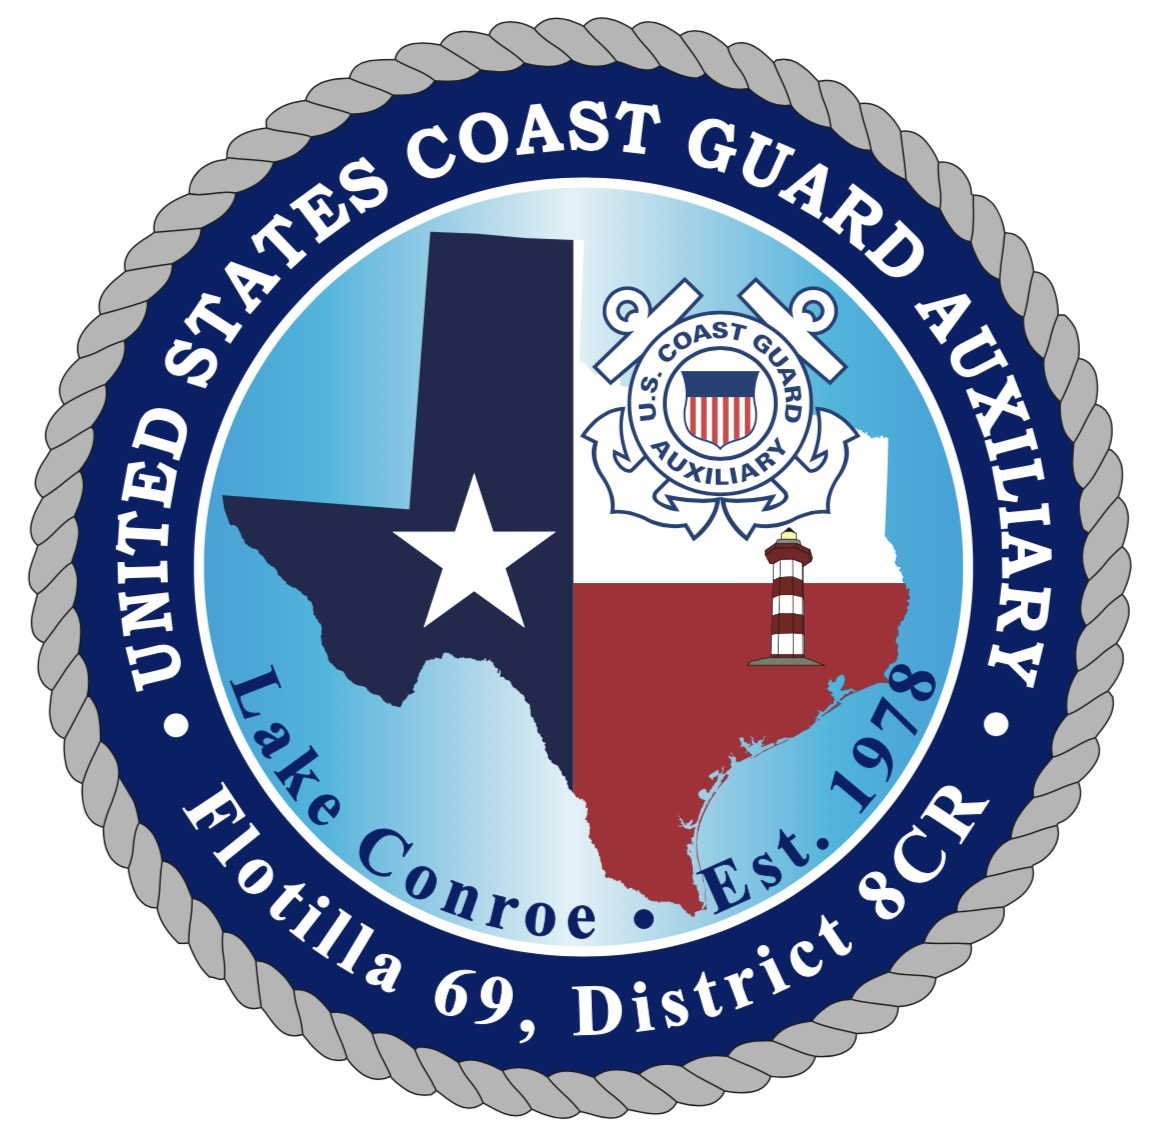 Official Seal of Flotilla 6-9, District 8CR